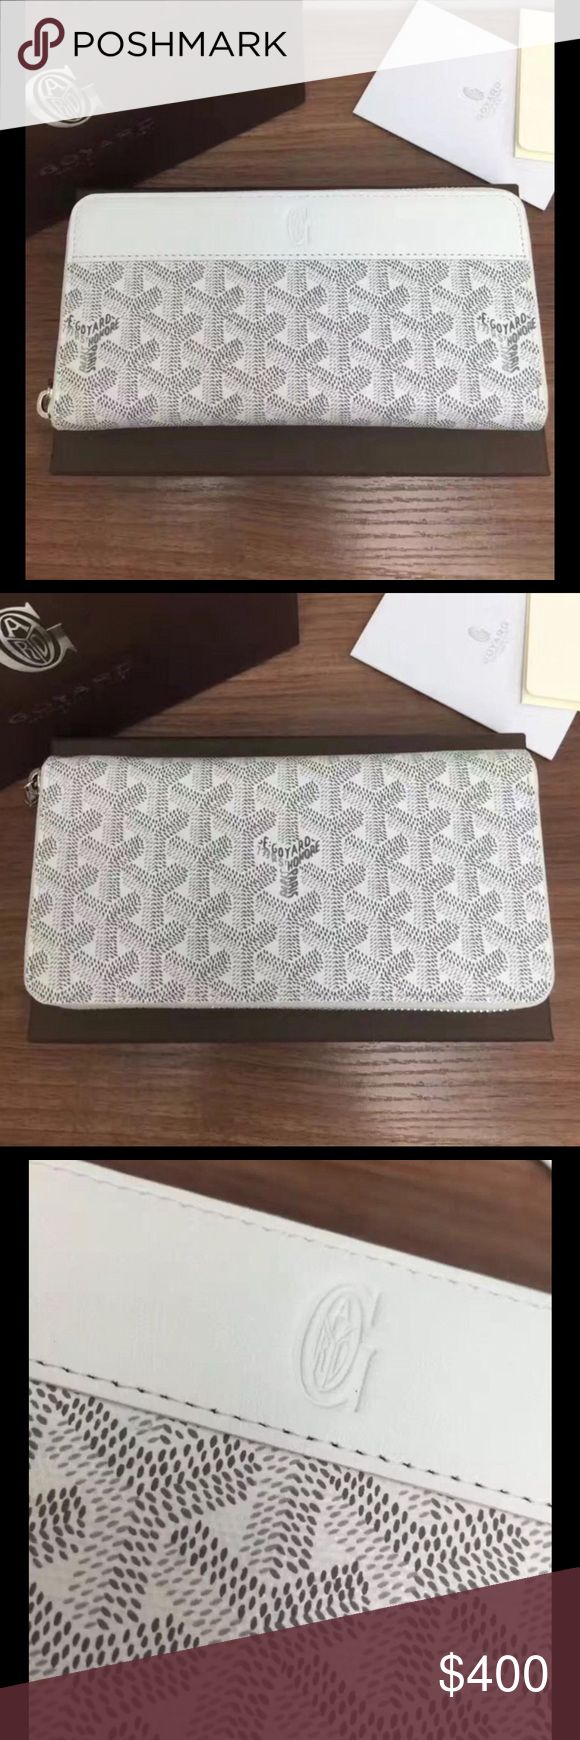 Goyard coin purse bi-fold wallet women's 100% authentic Goyard coin purse wallet. Comes with box. Used 2 times. Gorgeous white painted canvas and yellow leather interior. Please allow up to 10 days for handling. Open to reasonable offers. Please inquire about discounted pricing! Please ask any questions. Thanks and have a great day :) Goyard Accessories Key & Card Holders